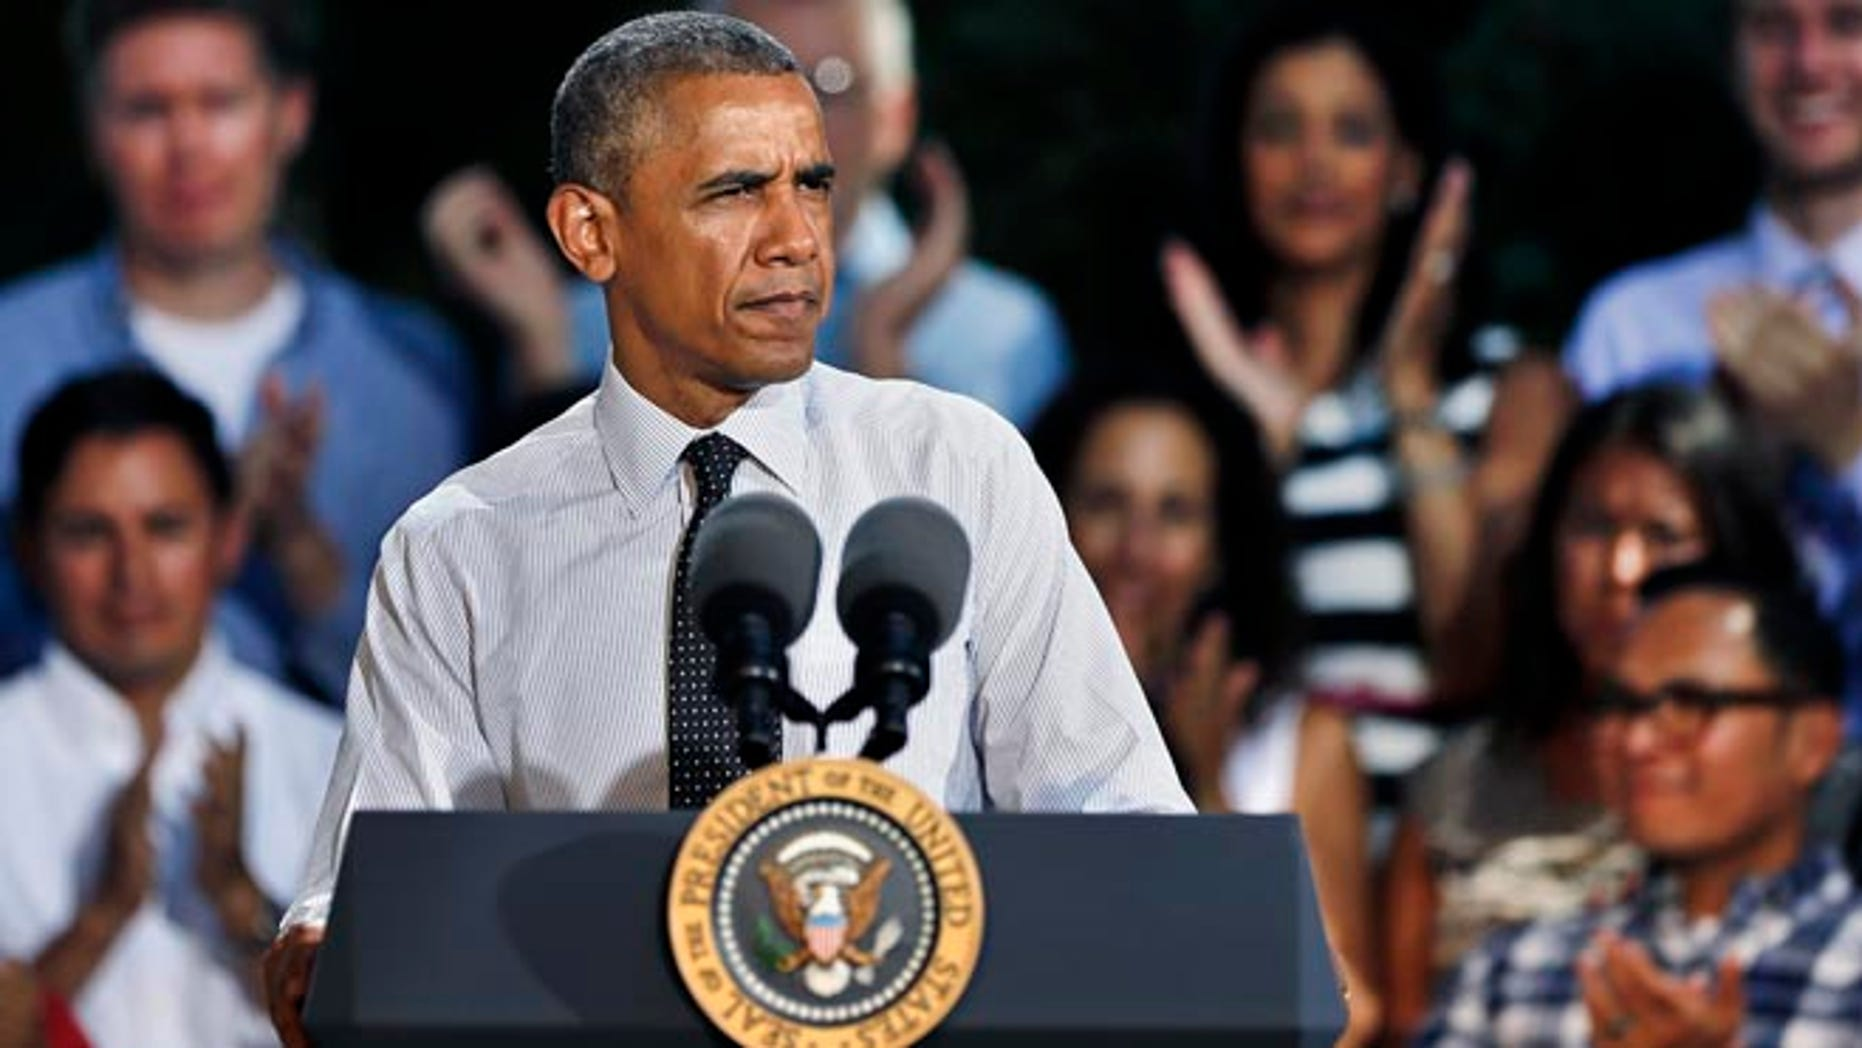 President Barack Obama speaks about the economy, Wednesday, July 9, 2014, at Cheesman Park in Denver.